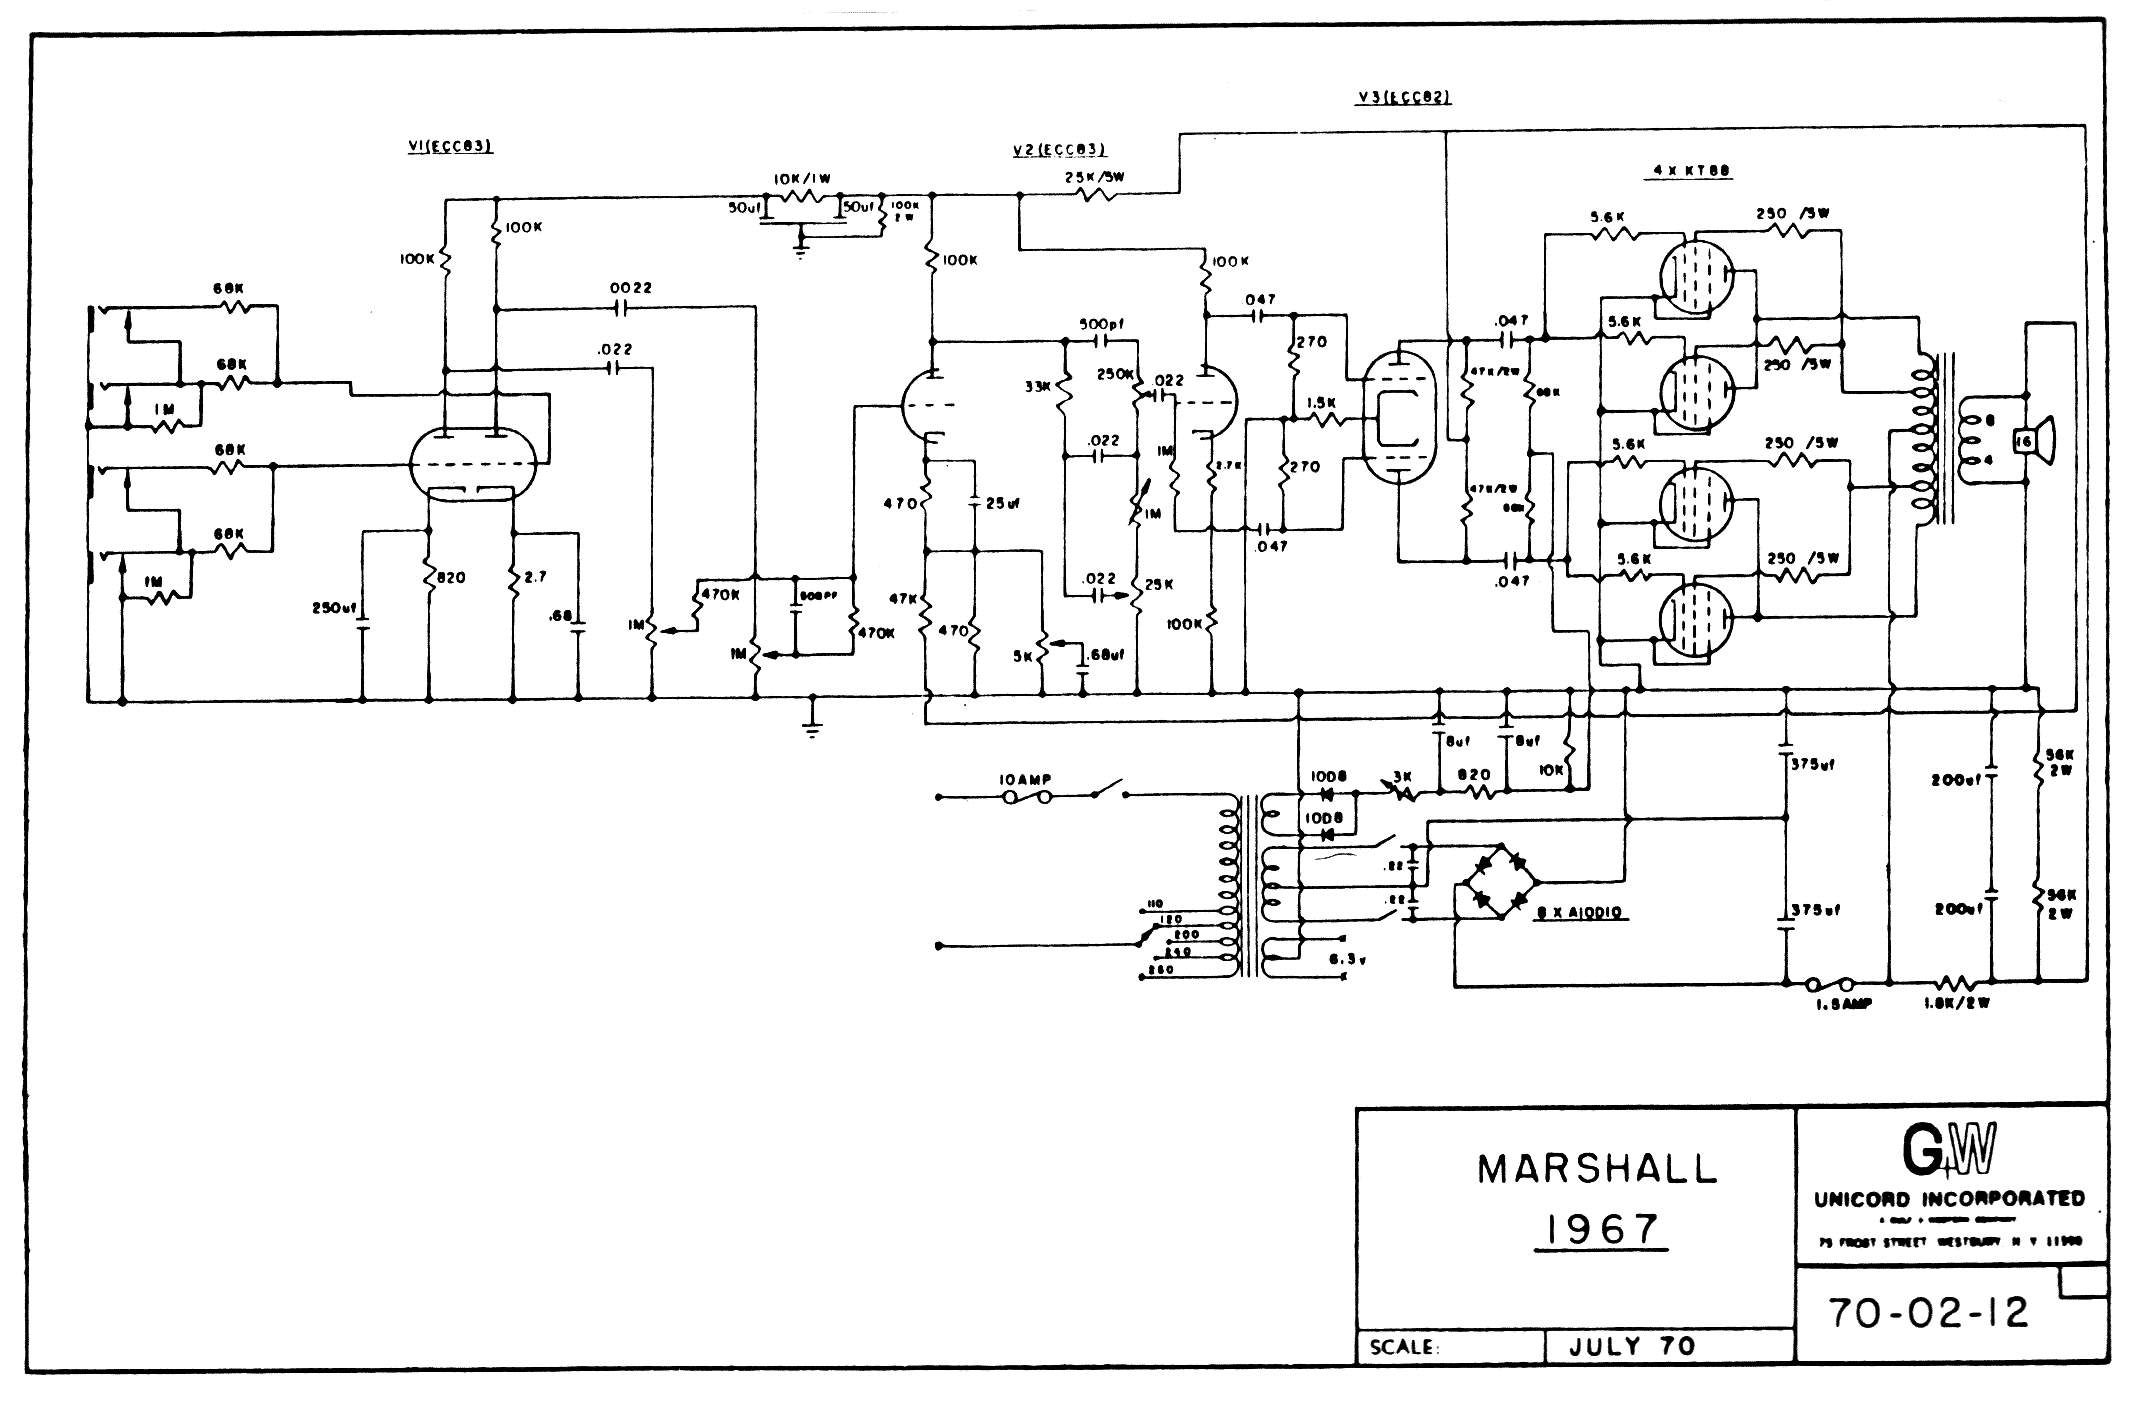 Amp Archives/Marshall/Schematics & Layouts/Marshall Amp Schematics/200 Watt Heads/1978 200W Bass/1978u.